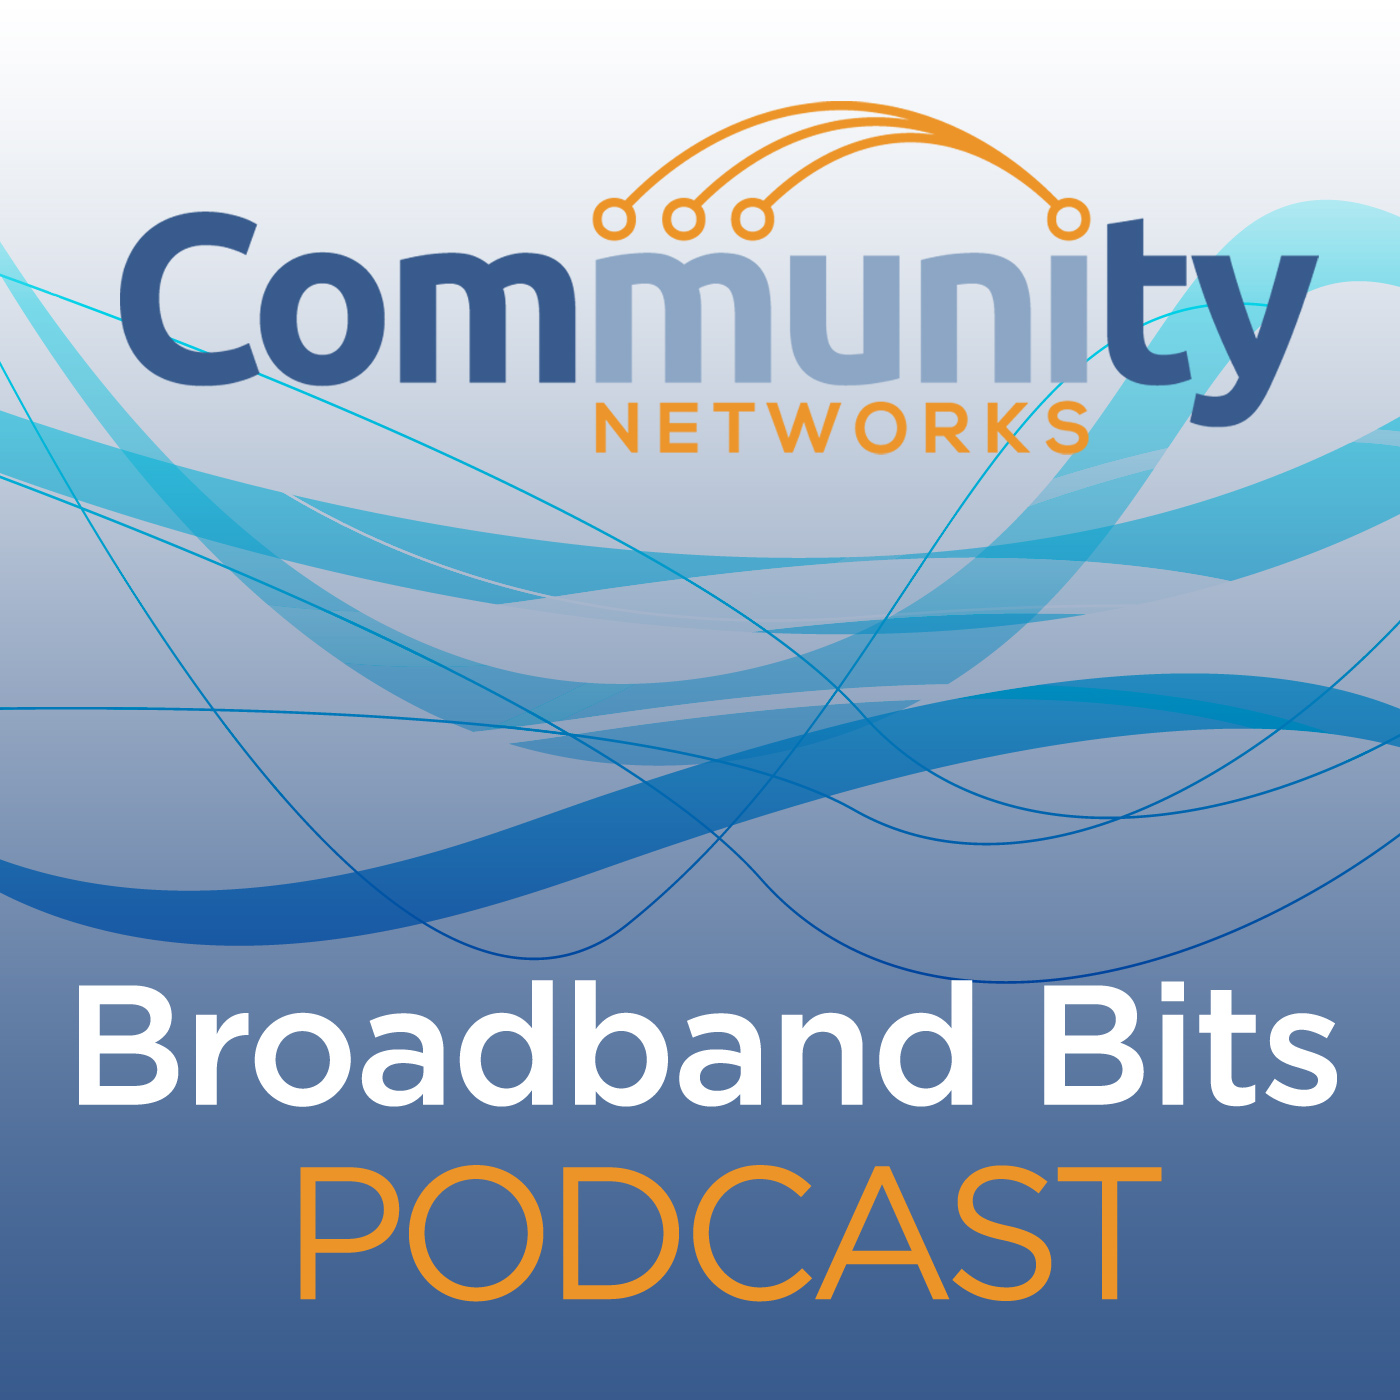 Broadband Bits Podcast